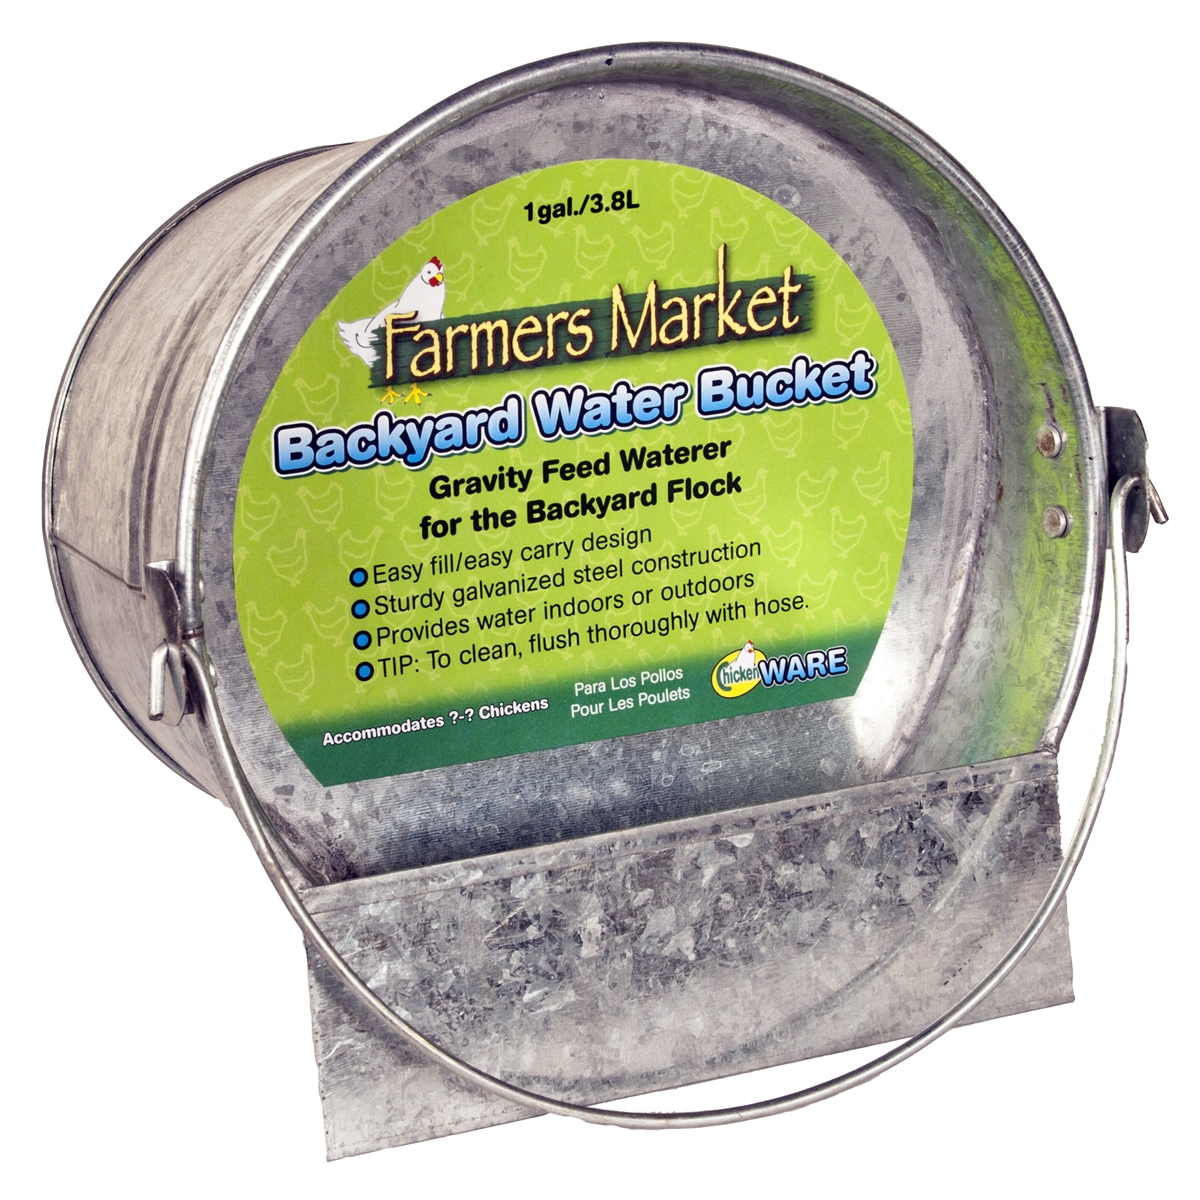 Backyard Water Bucket